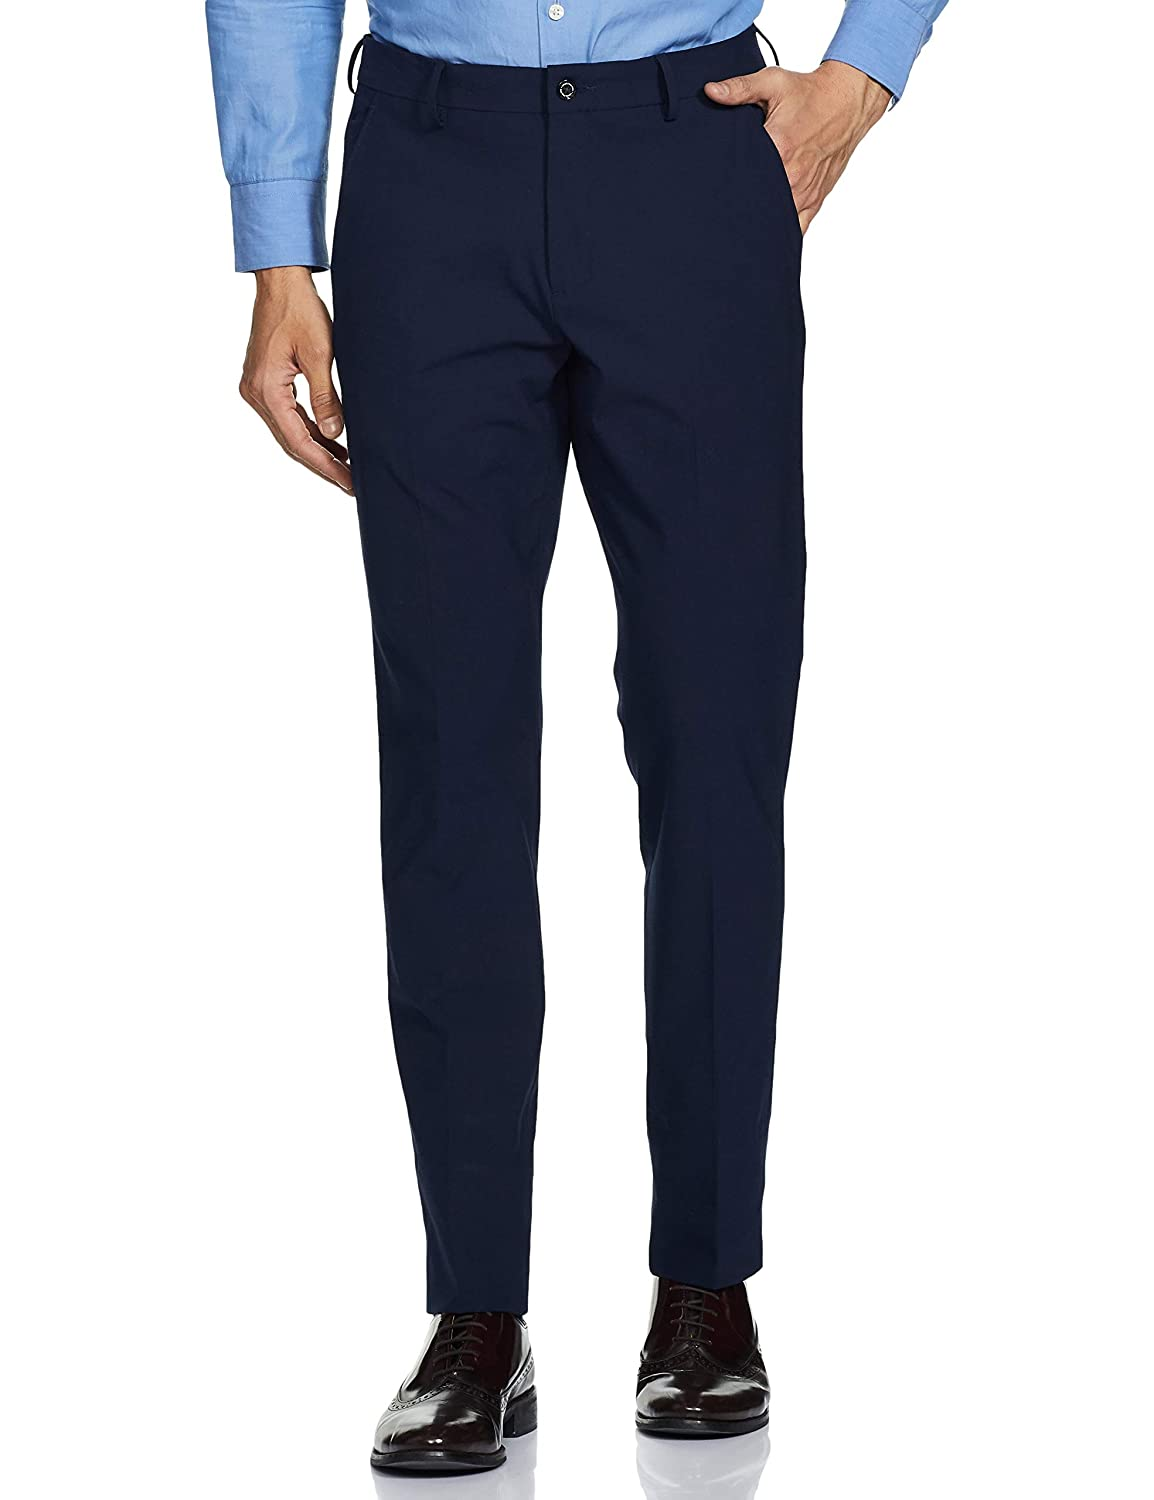 navy pant for civil services and upsc